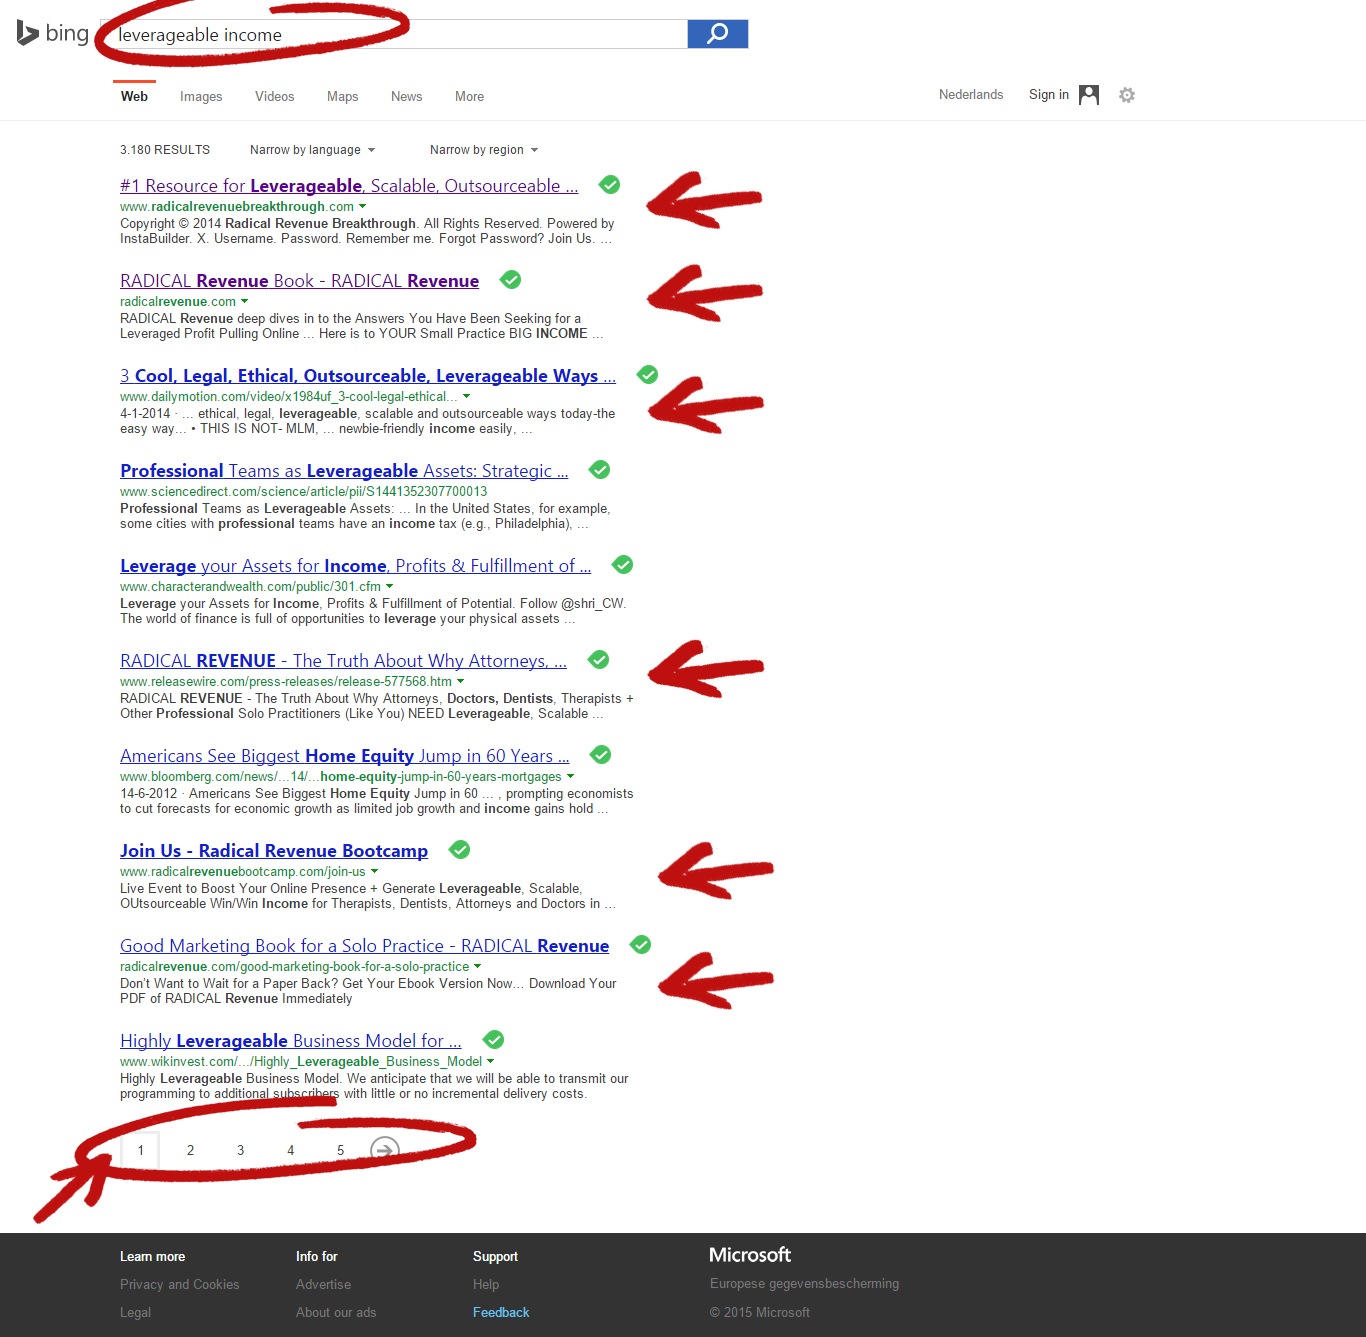 leverageable income number 1 on bing tiphanie jamison